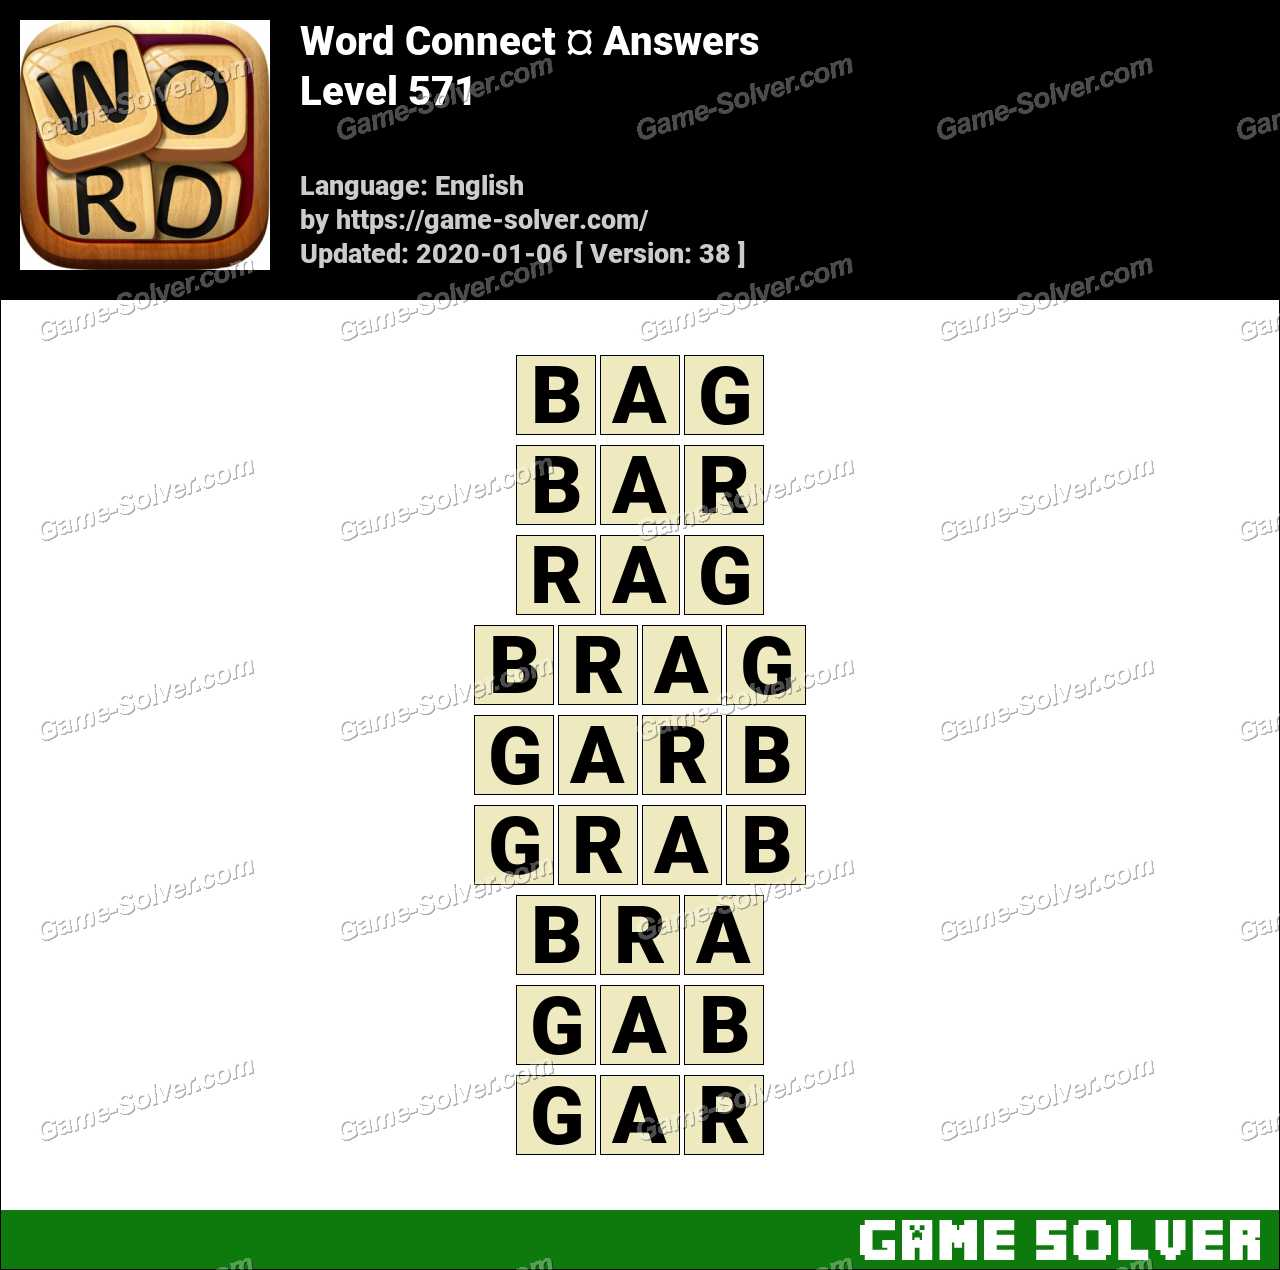 Word Connect Level 571 Answers